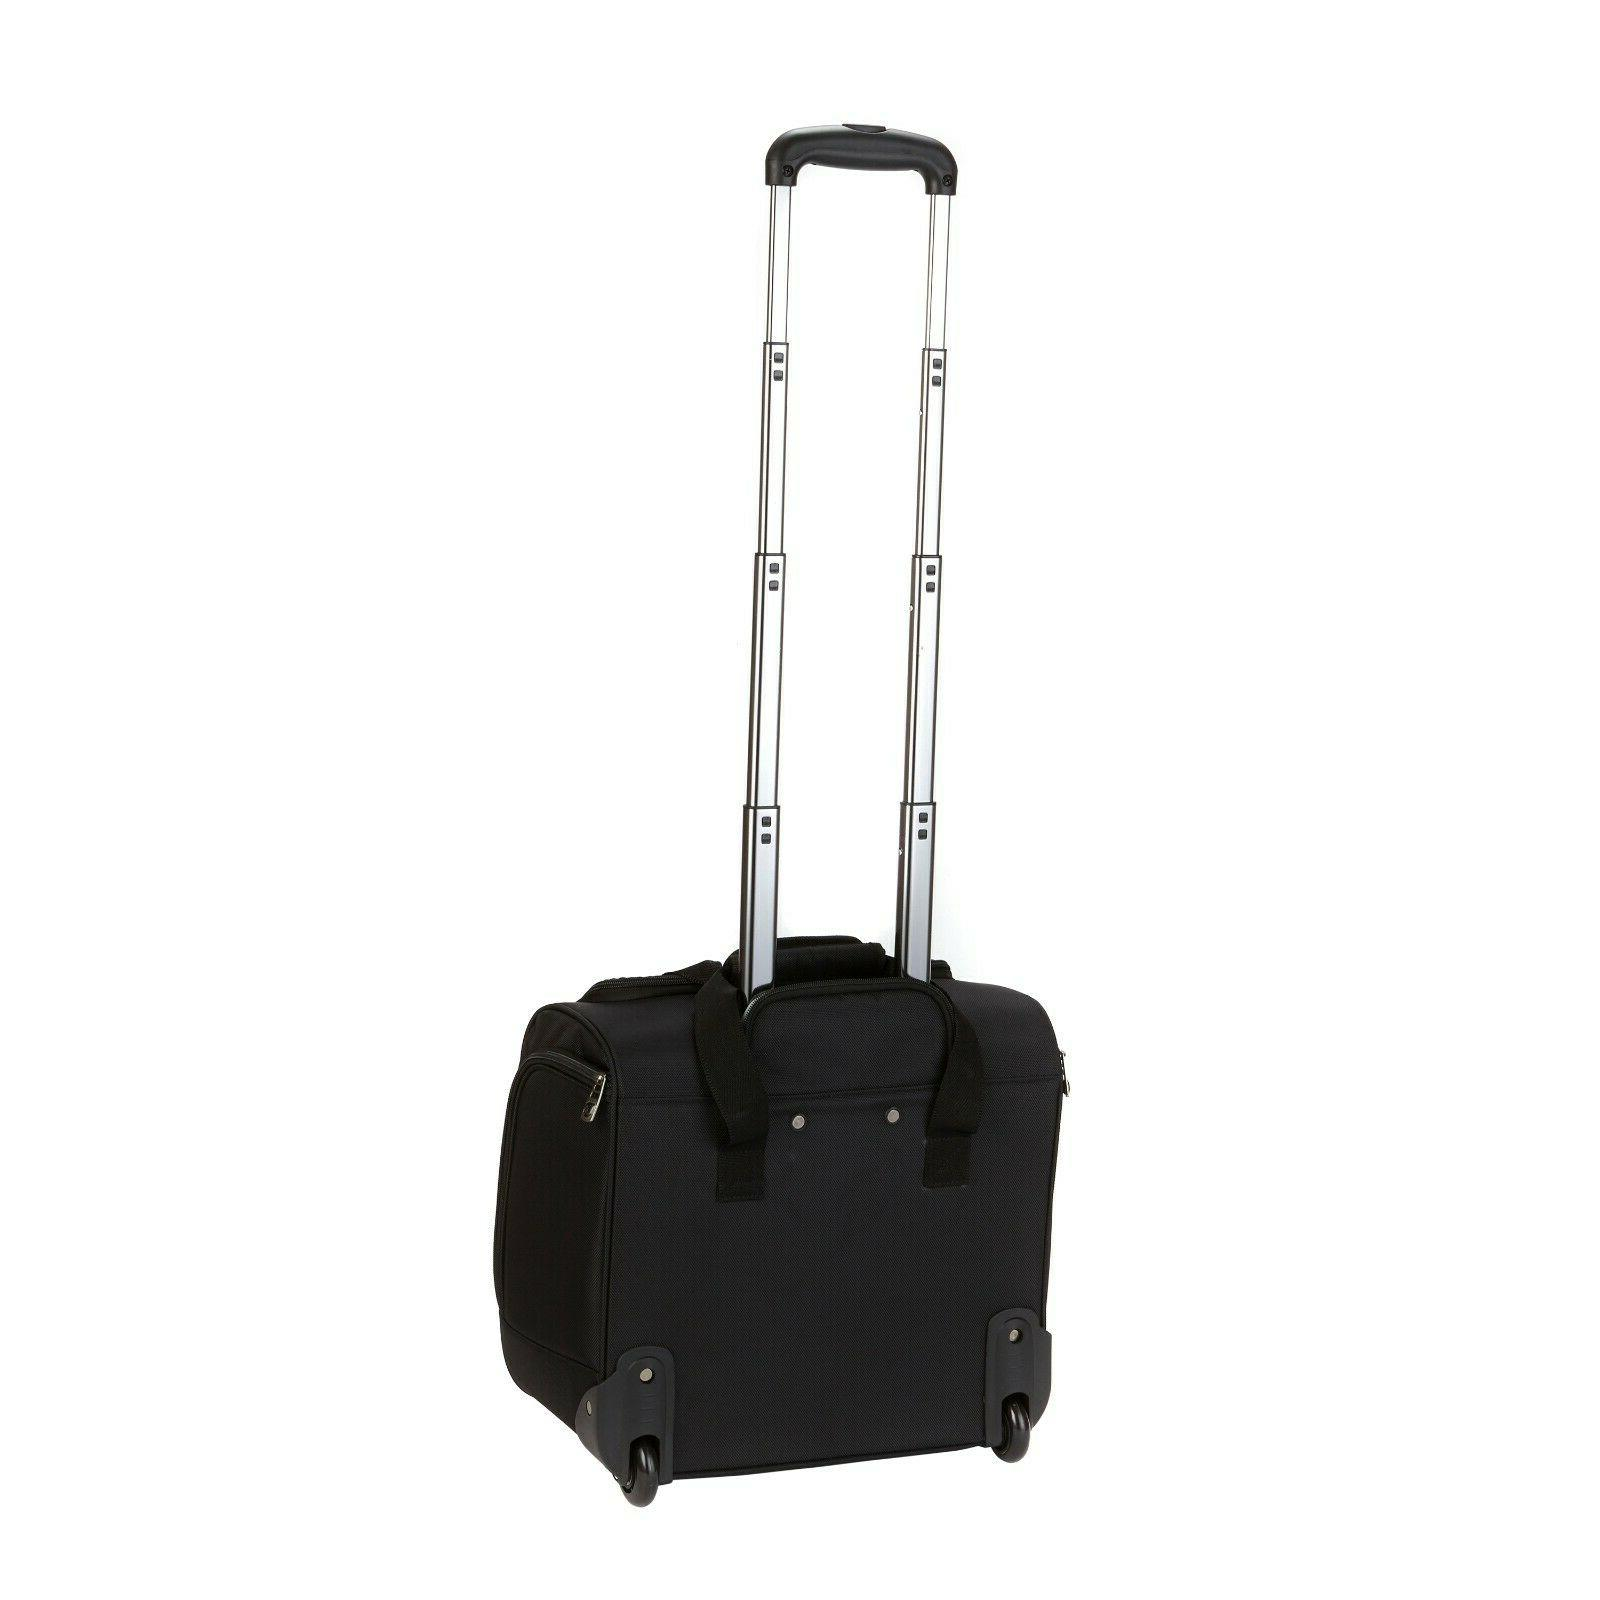 16 Inch Carry Luggage Rolling Travel Wheels Black NEW